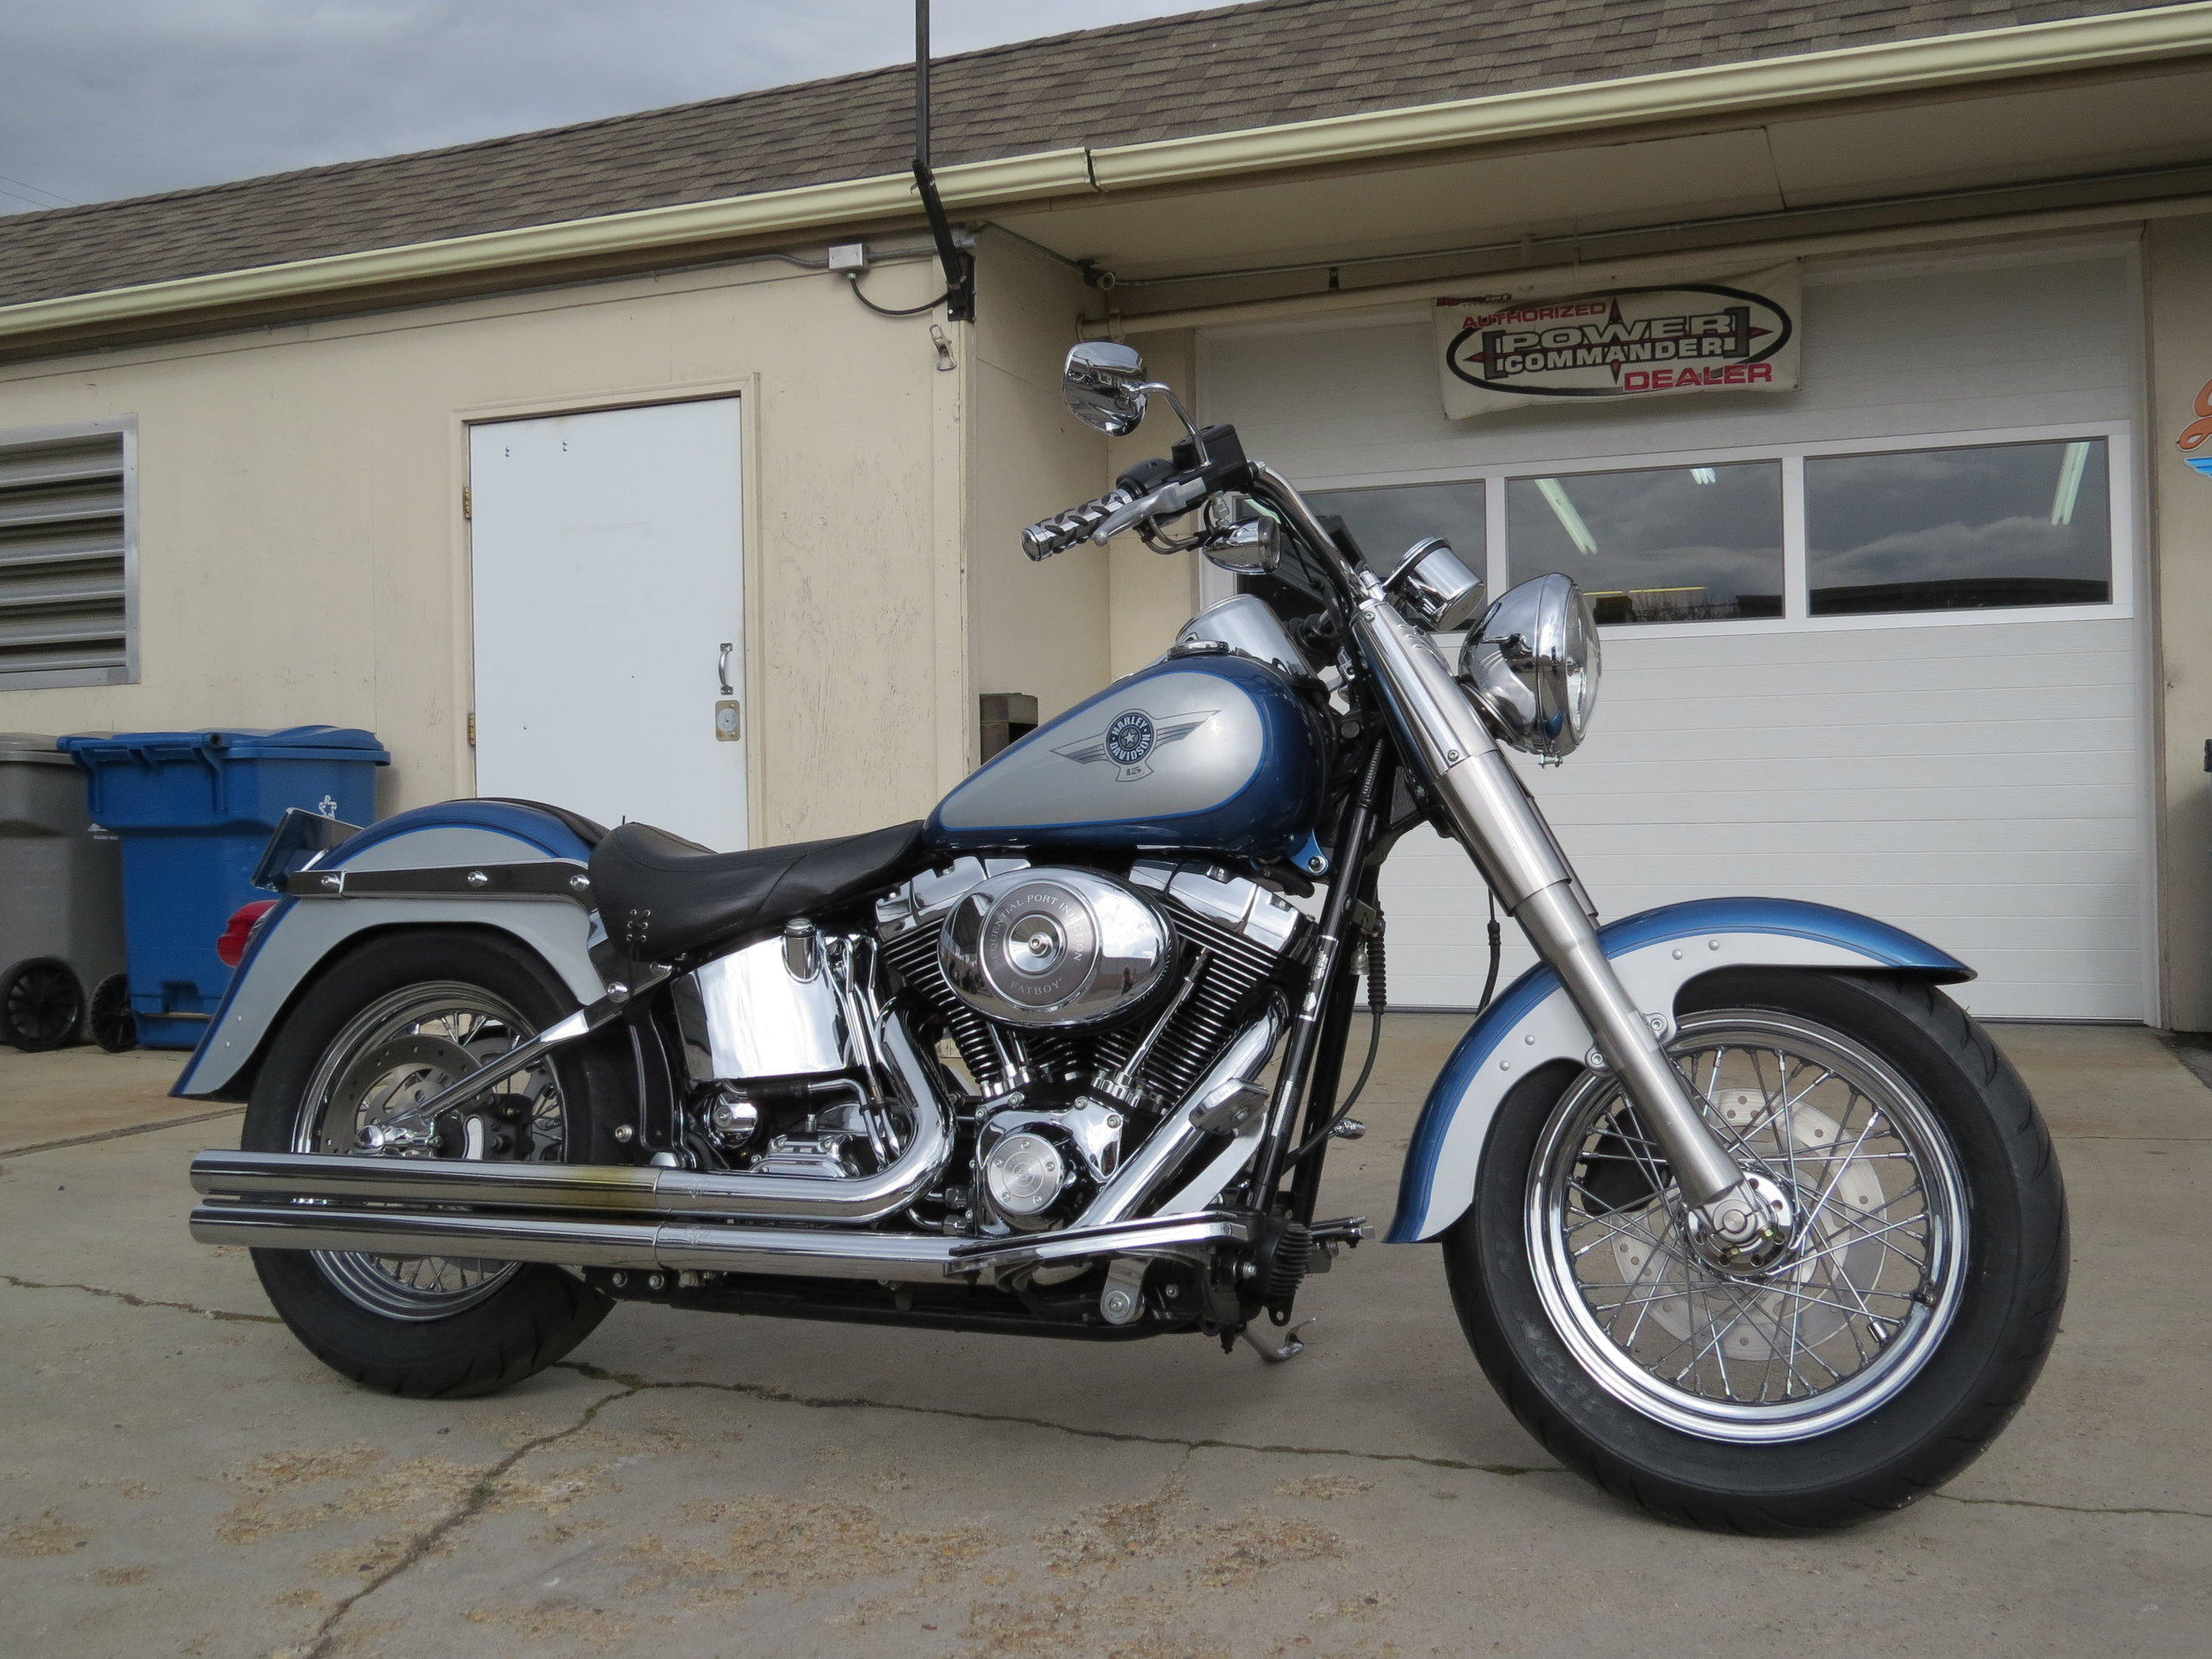 TERRY'S 2005 HARLEY SOFTAIL